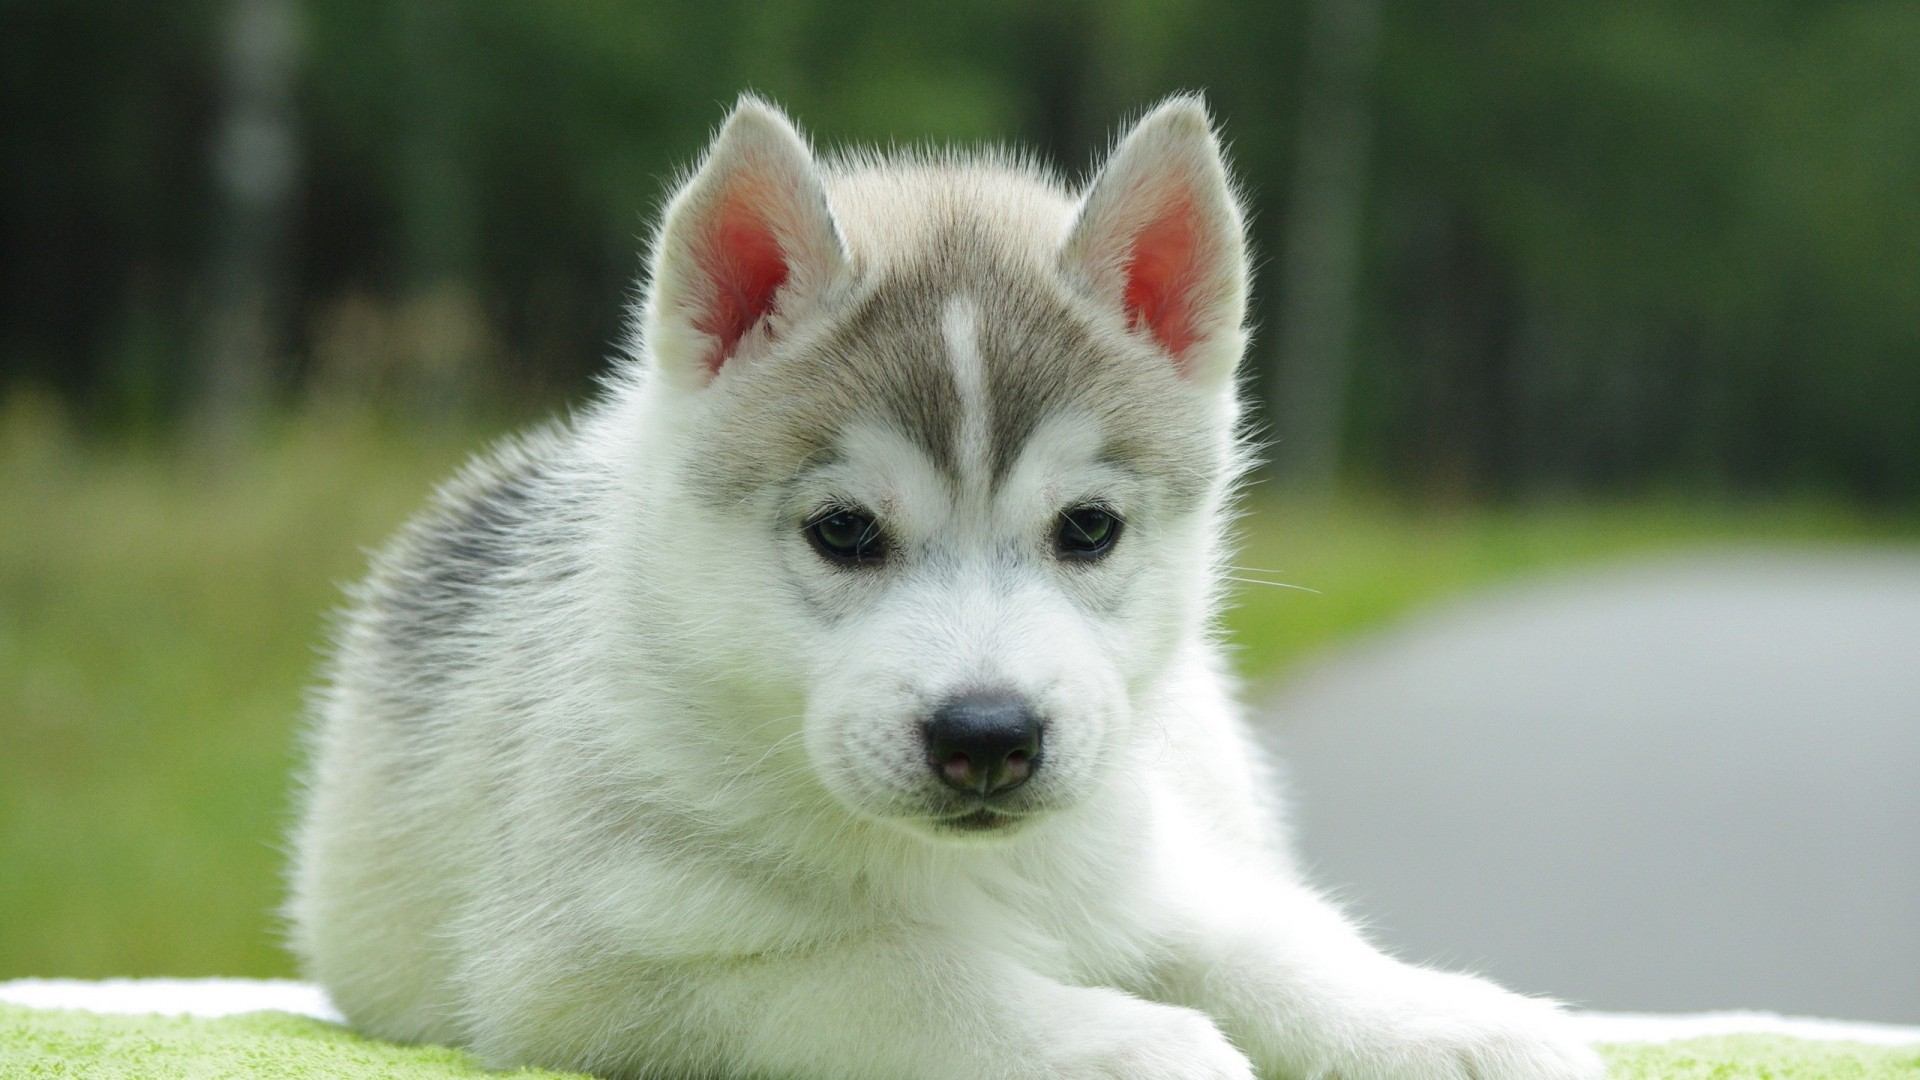 Puppy Wallpaper ·① Download Free Cool Backgrounds For